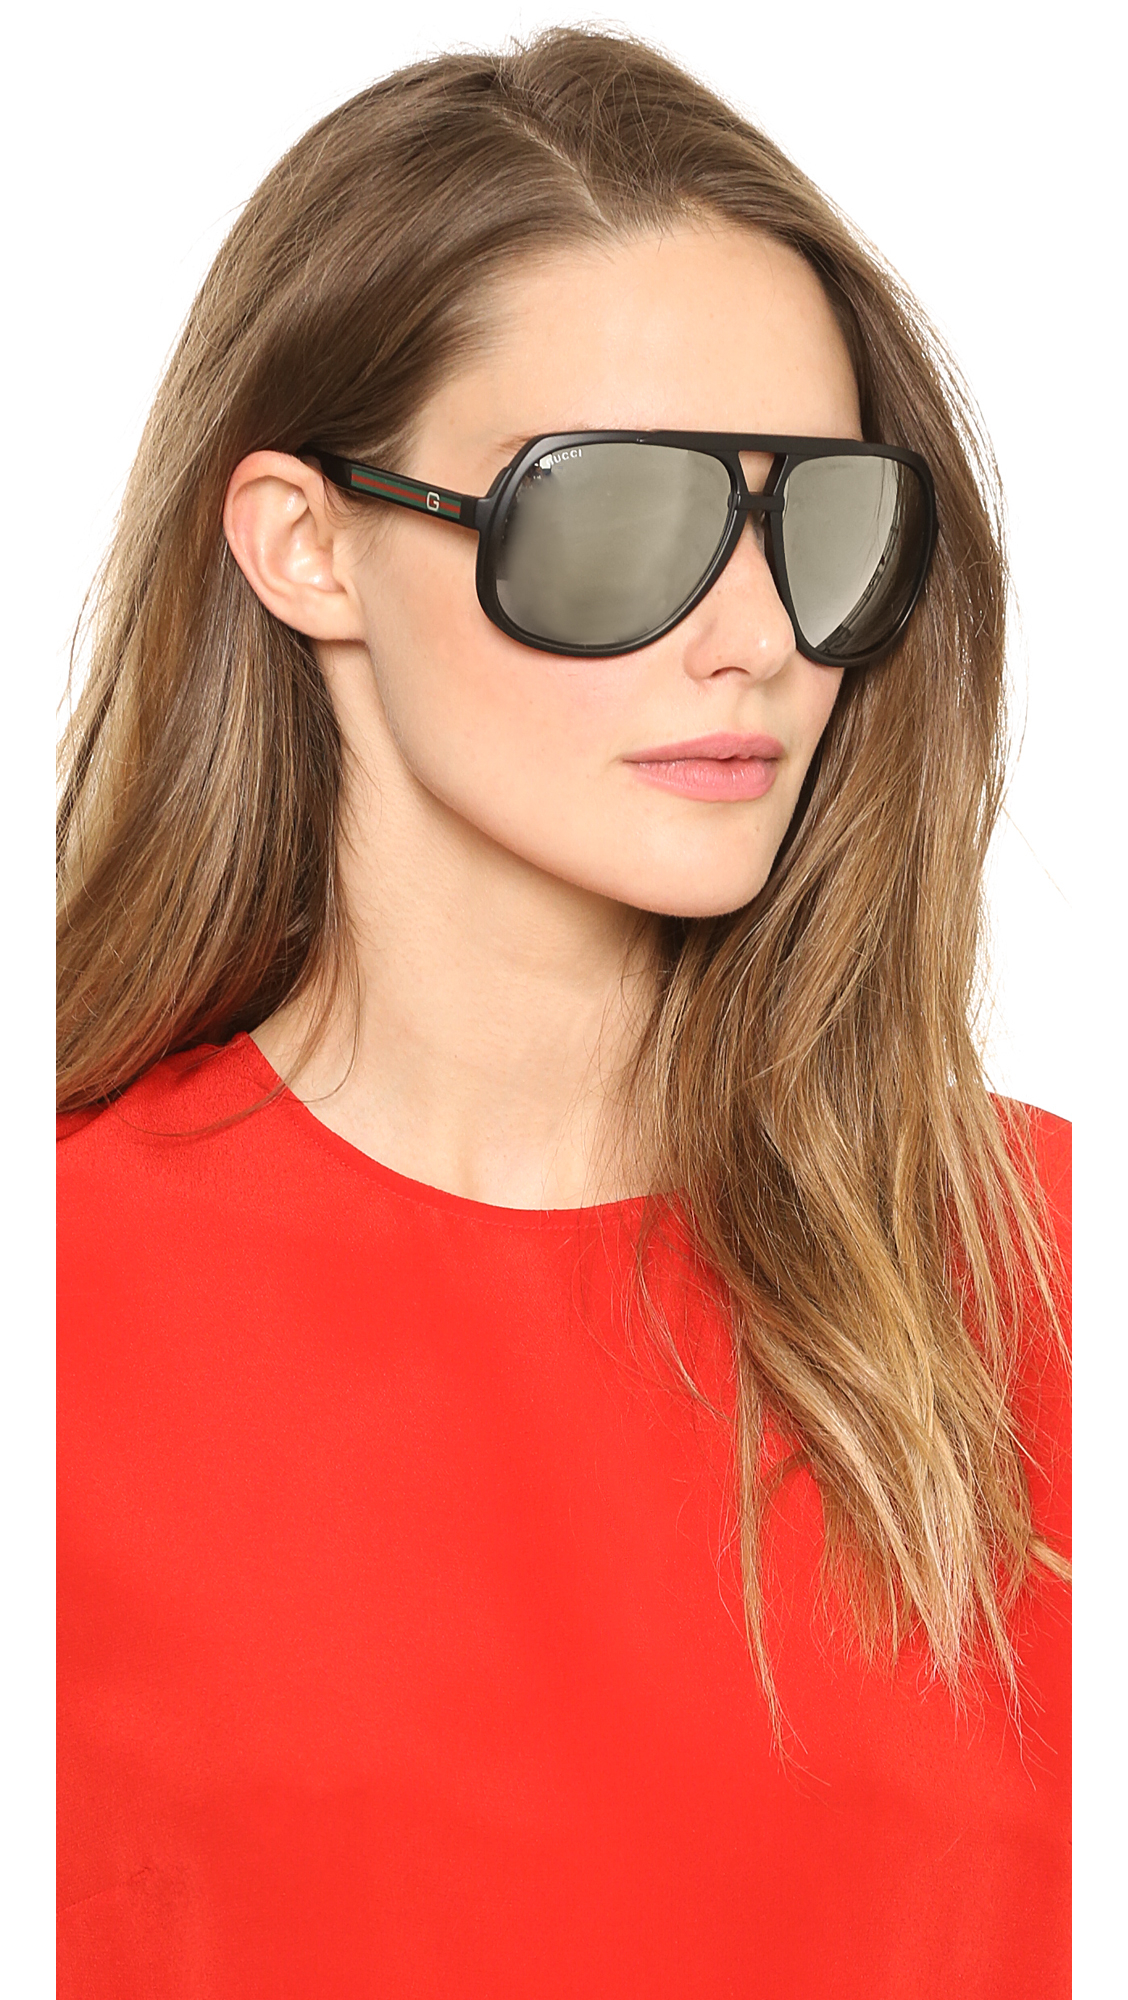 Oversized Mirrored Sunglasses  gucci mirrored oversized aviator sunglasses matte black black